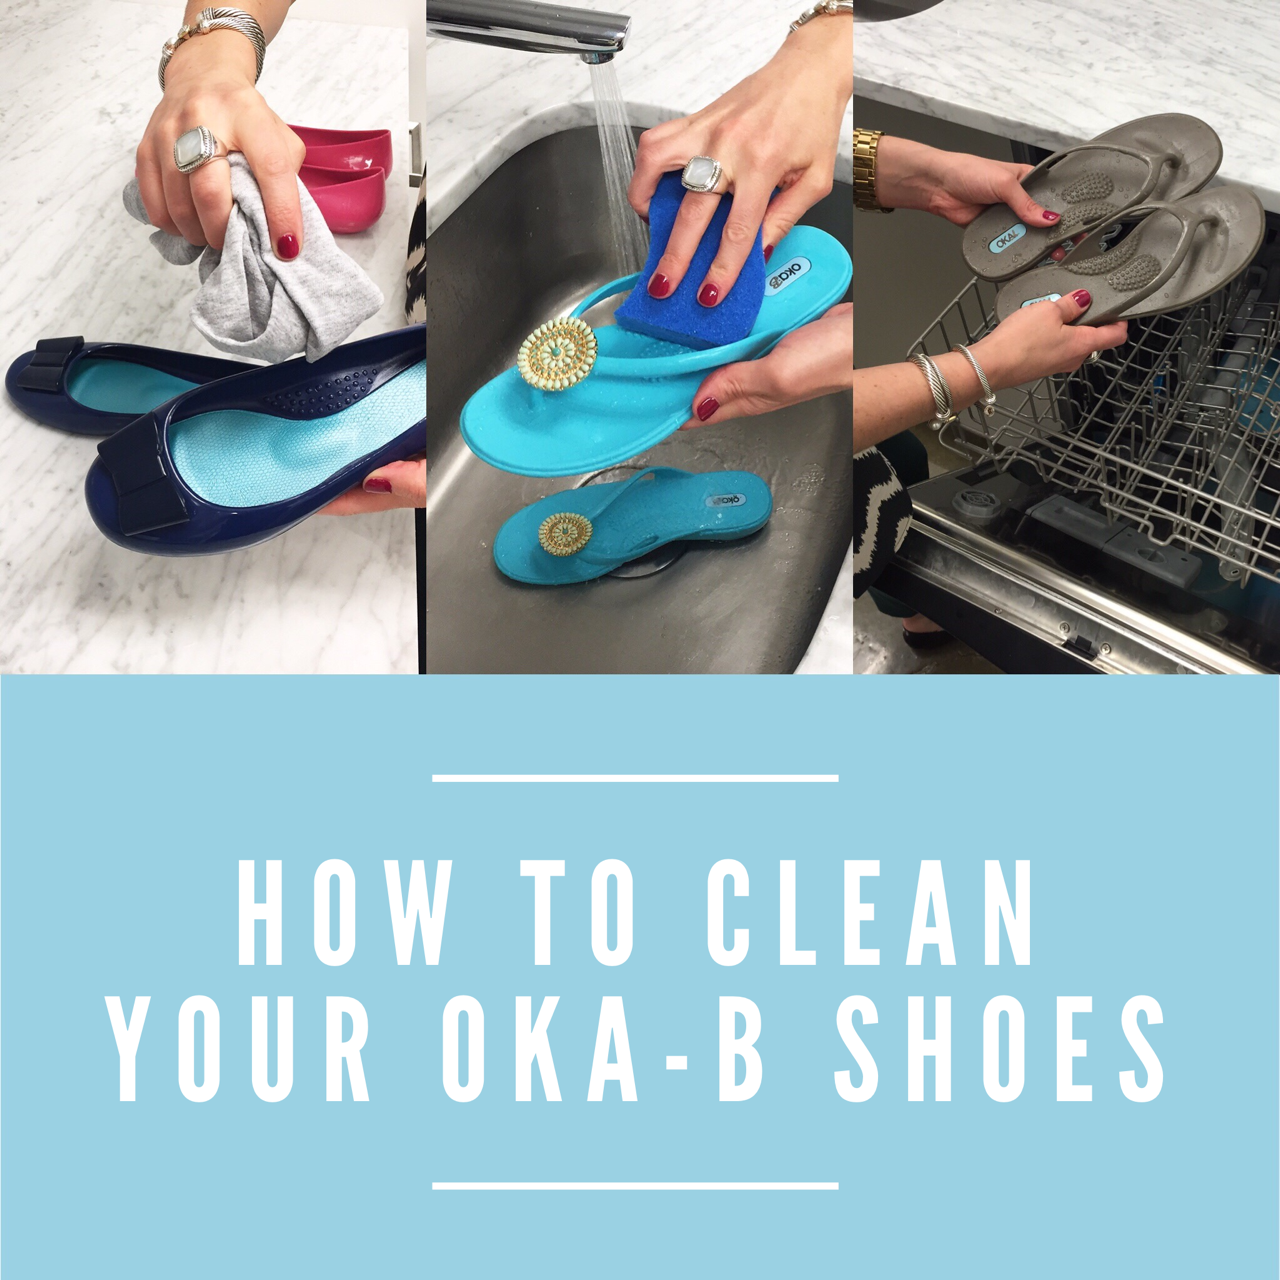 How To Clean Your Oka B Shoes Oka B Blog Shoes Toms Shoes Cleaning